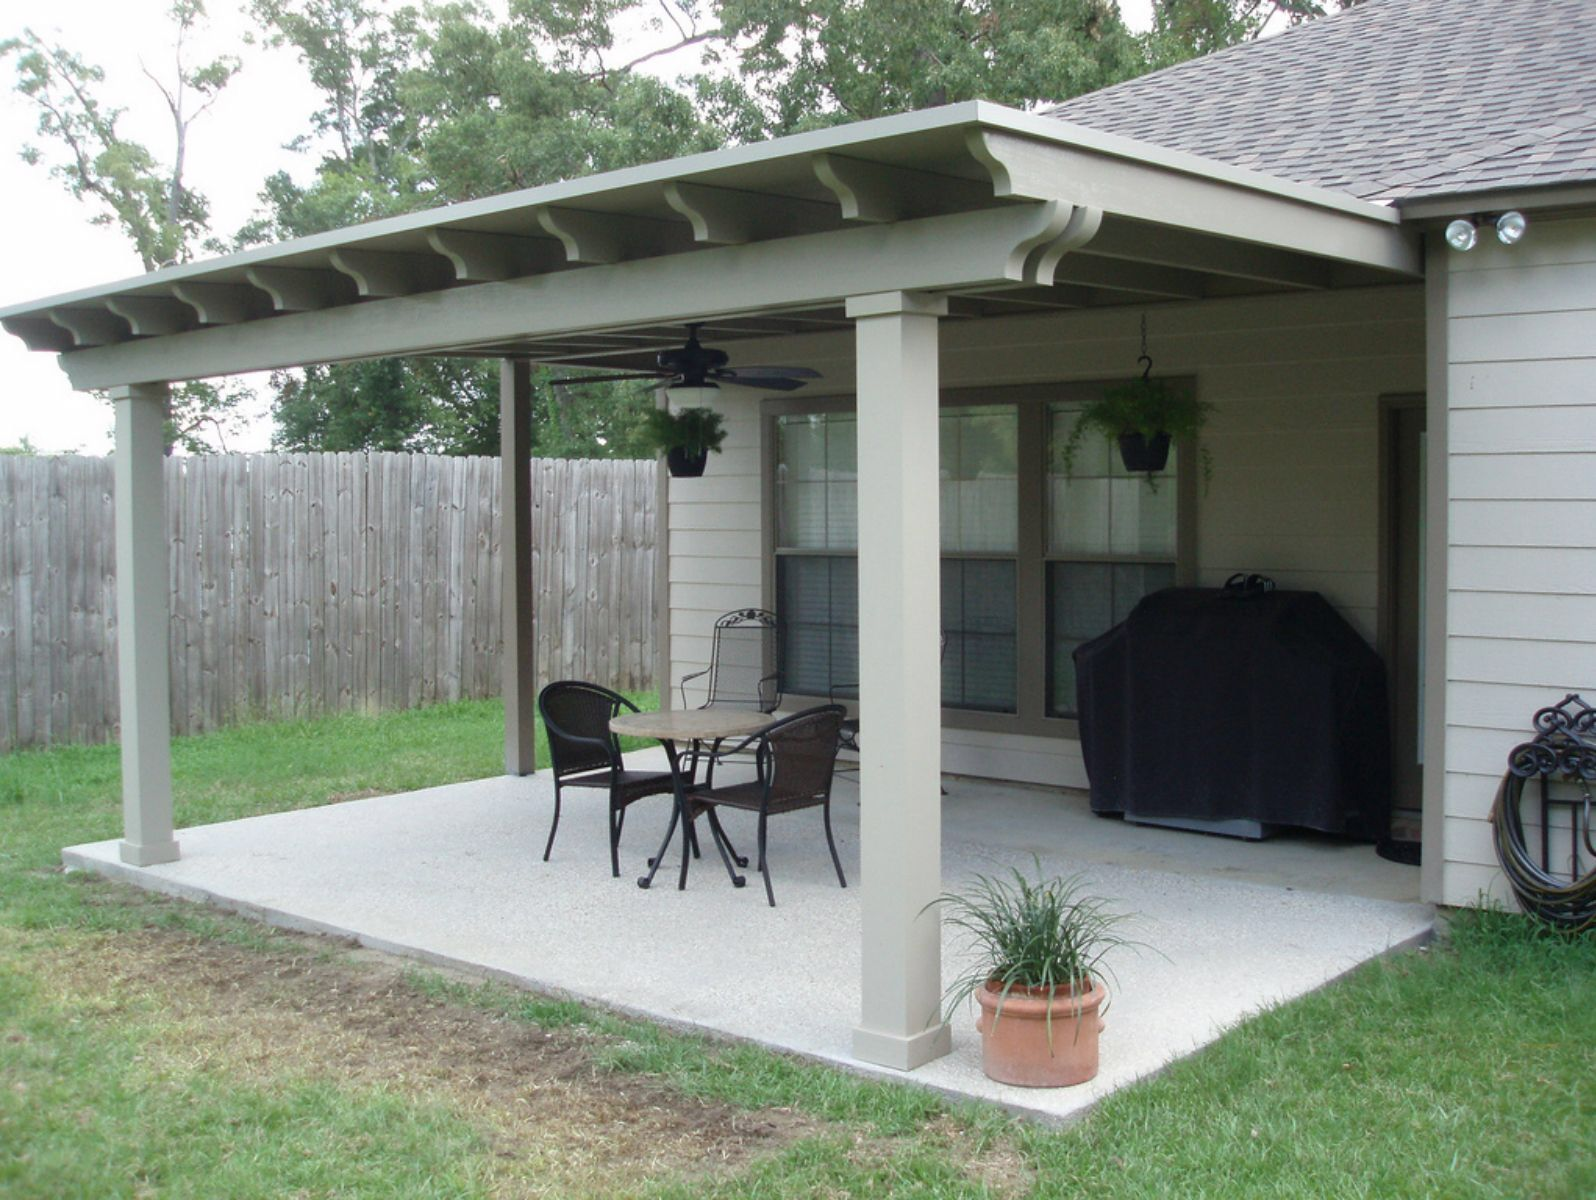 Enclosure Amazing Pergola Style Patio Cover And Wrought Iron Garden Hose Holder Also Black Ceiling Fan With Light Above Metal Base Round Table